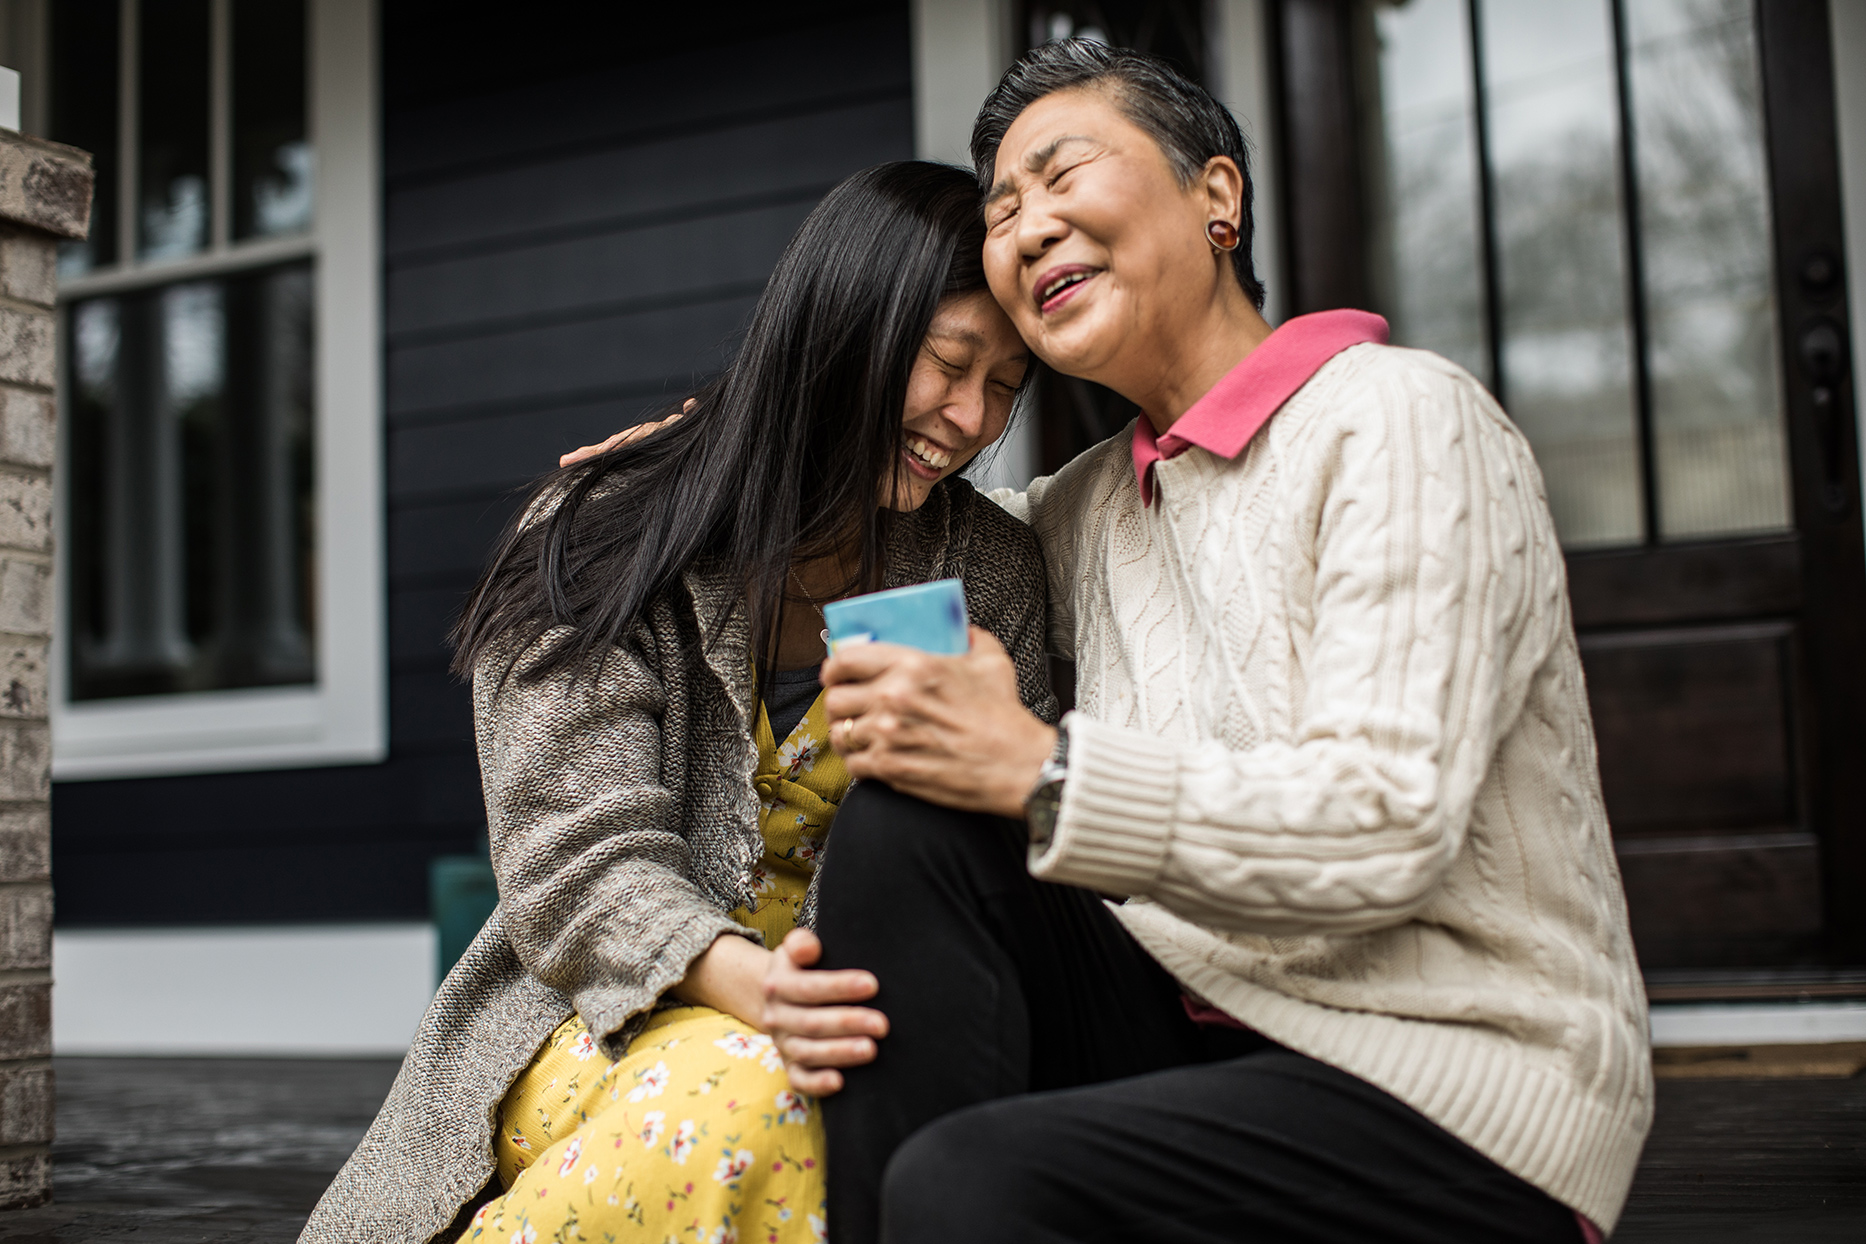 Two Asian women hugging on a porch